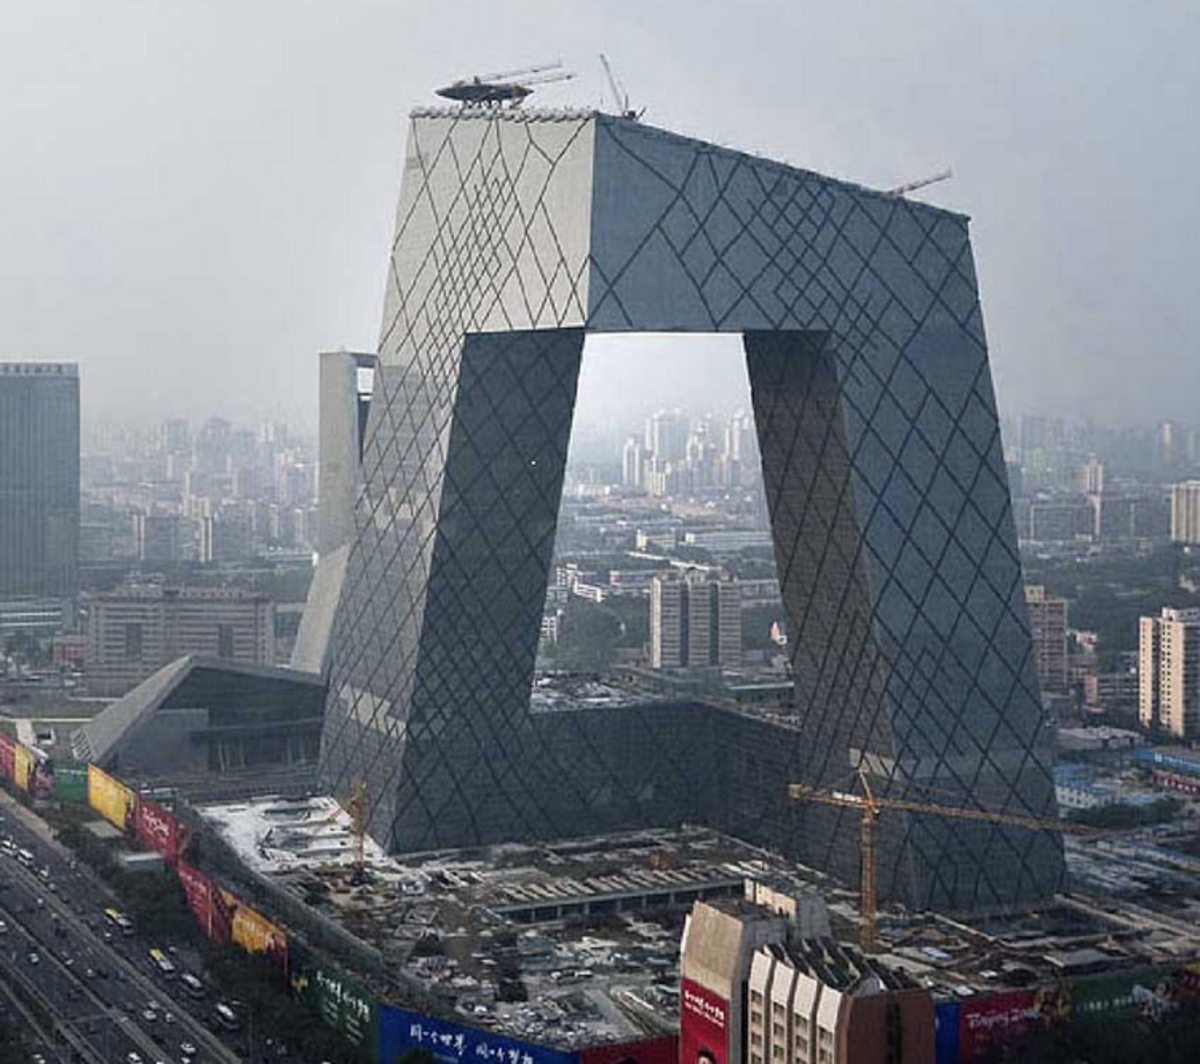 CCTV tower, designed by Rem Koolhaas in Beijing